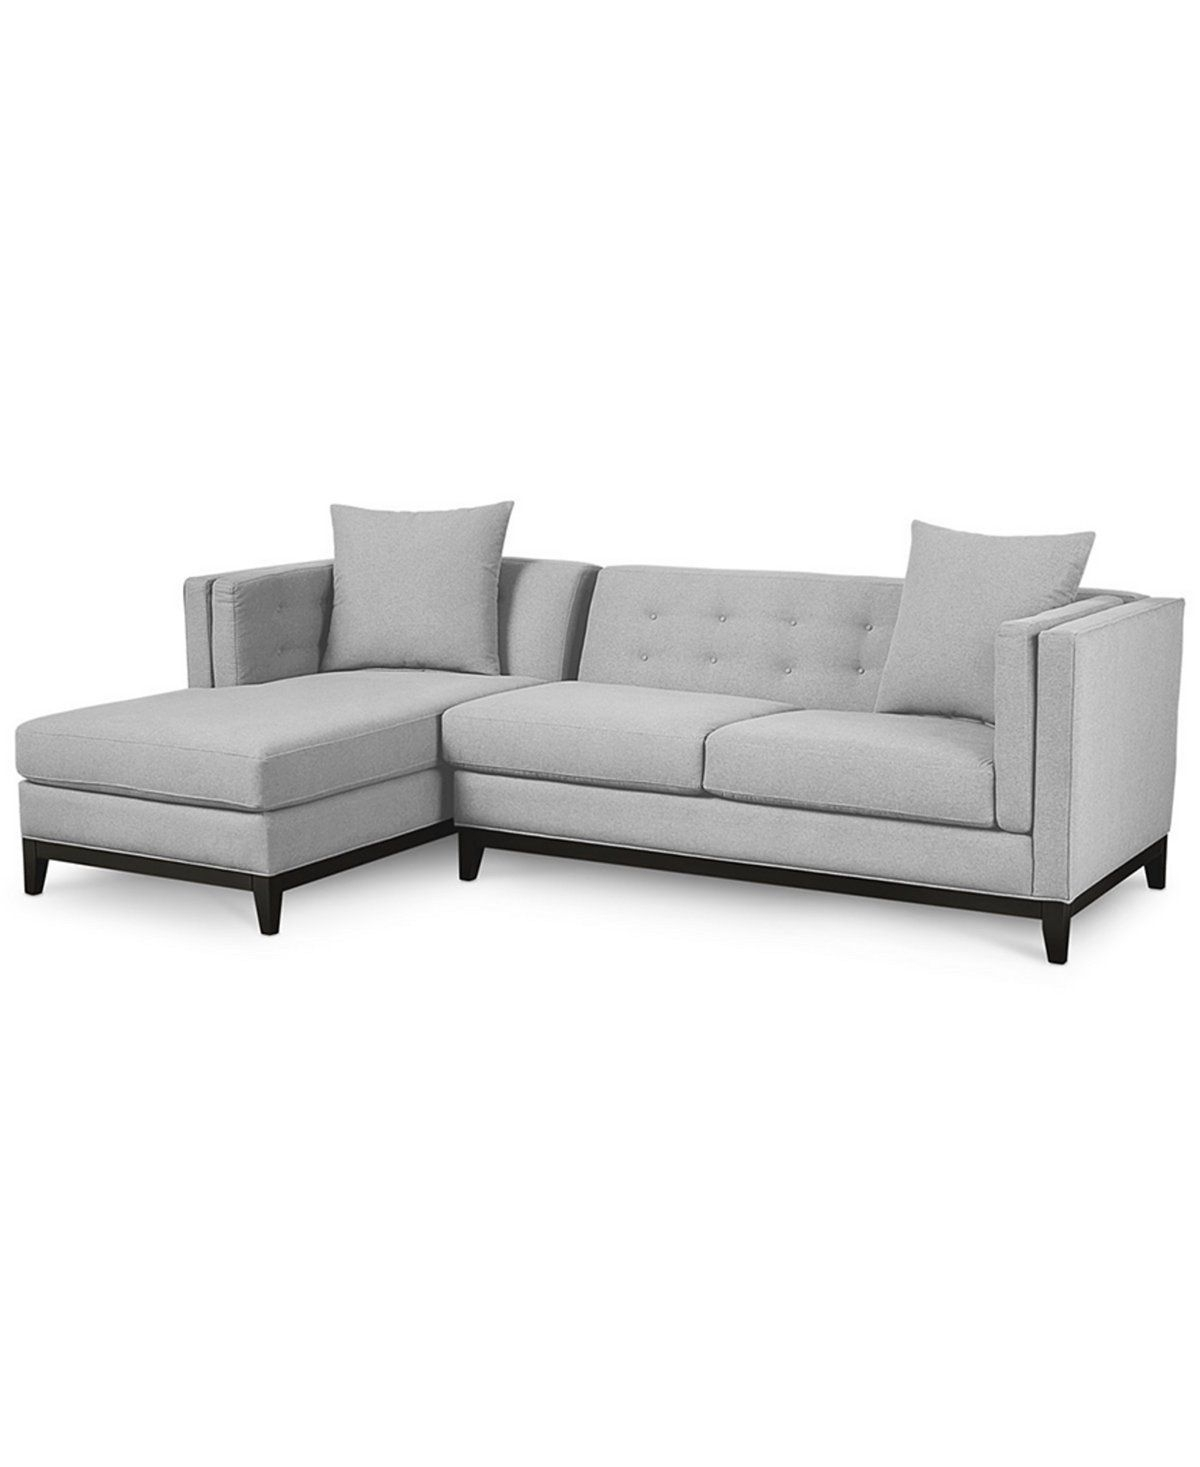 Braylei 2-Pc. Sectional With Chaise & 2 Toss Pillows, Only At Macy's with regard to Turdur 2 Piece Sectionals With Raf Loveseat (Image 5 of 30)